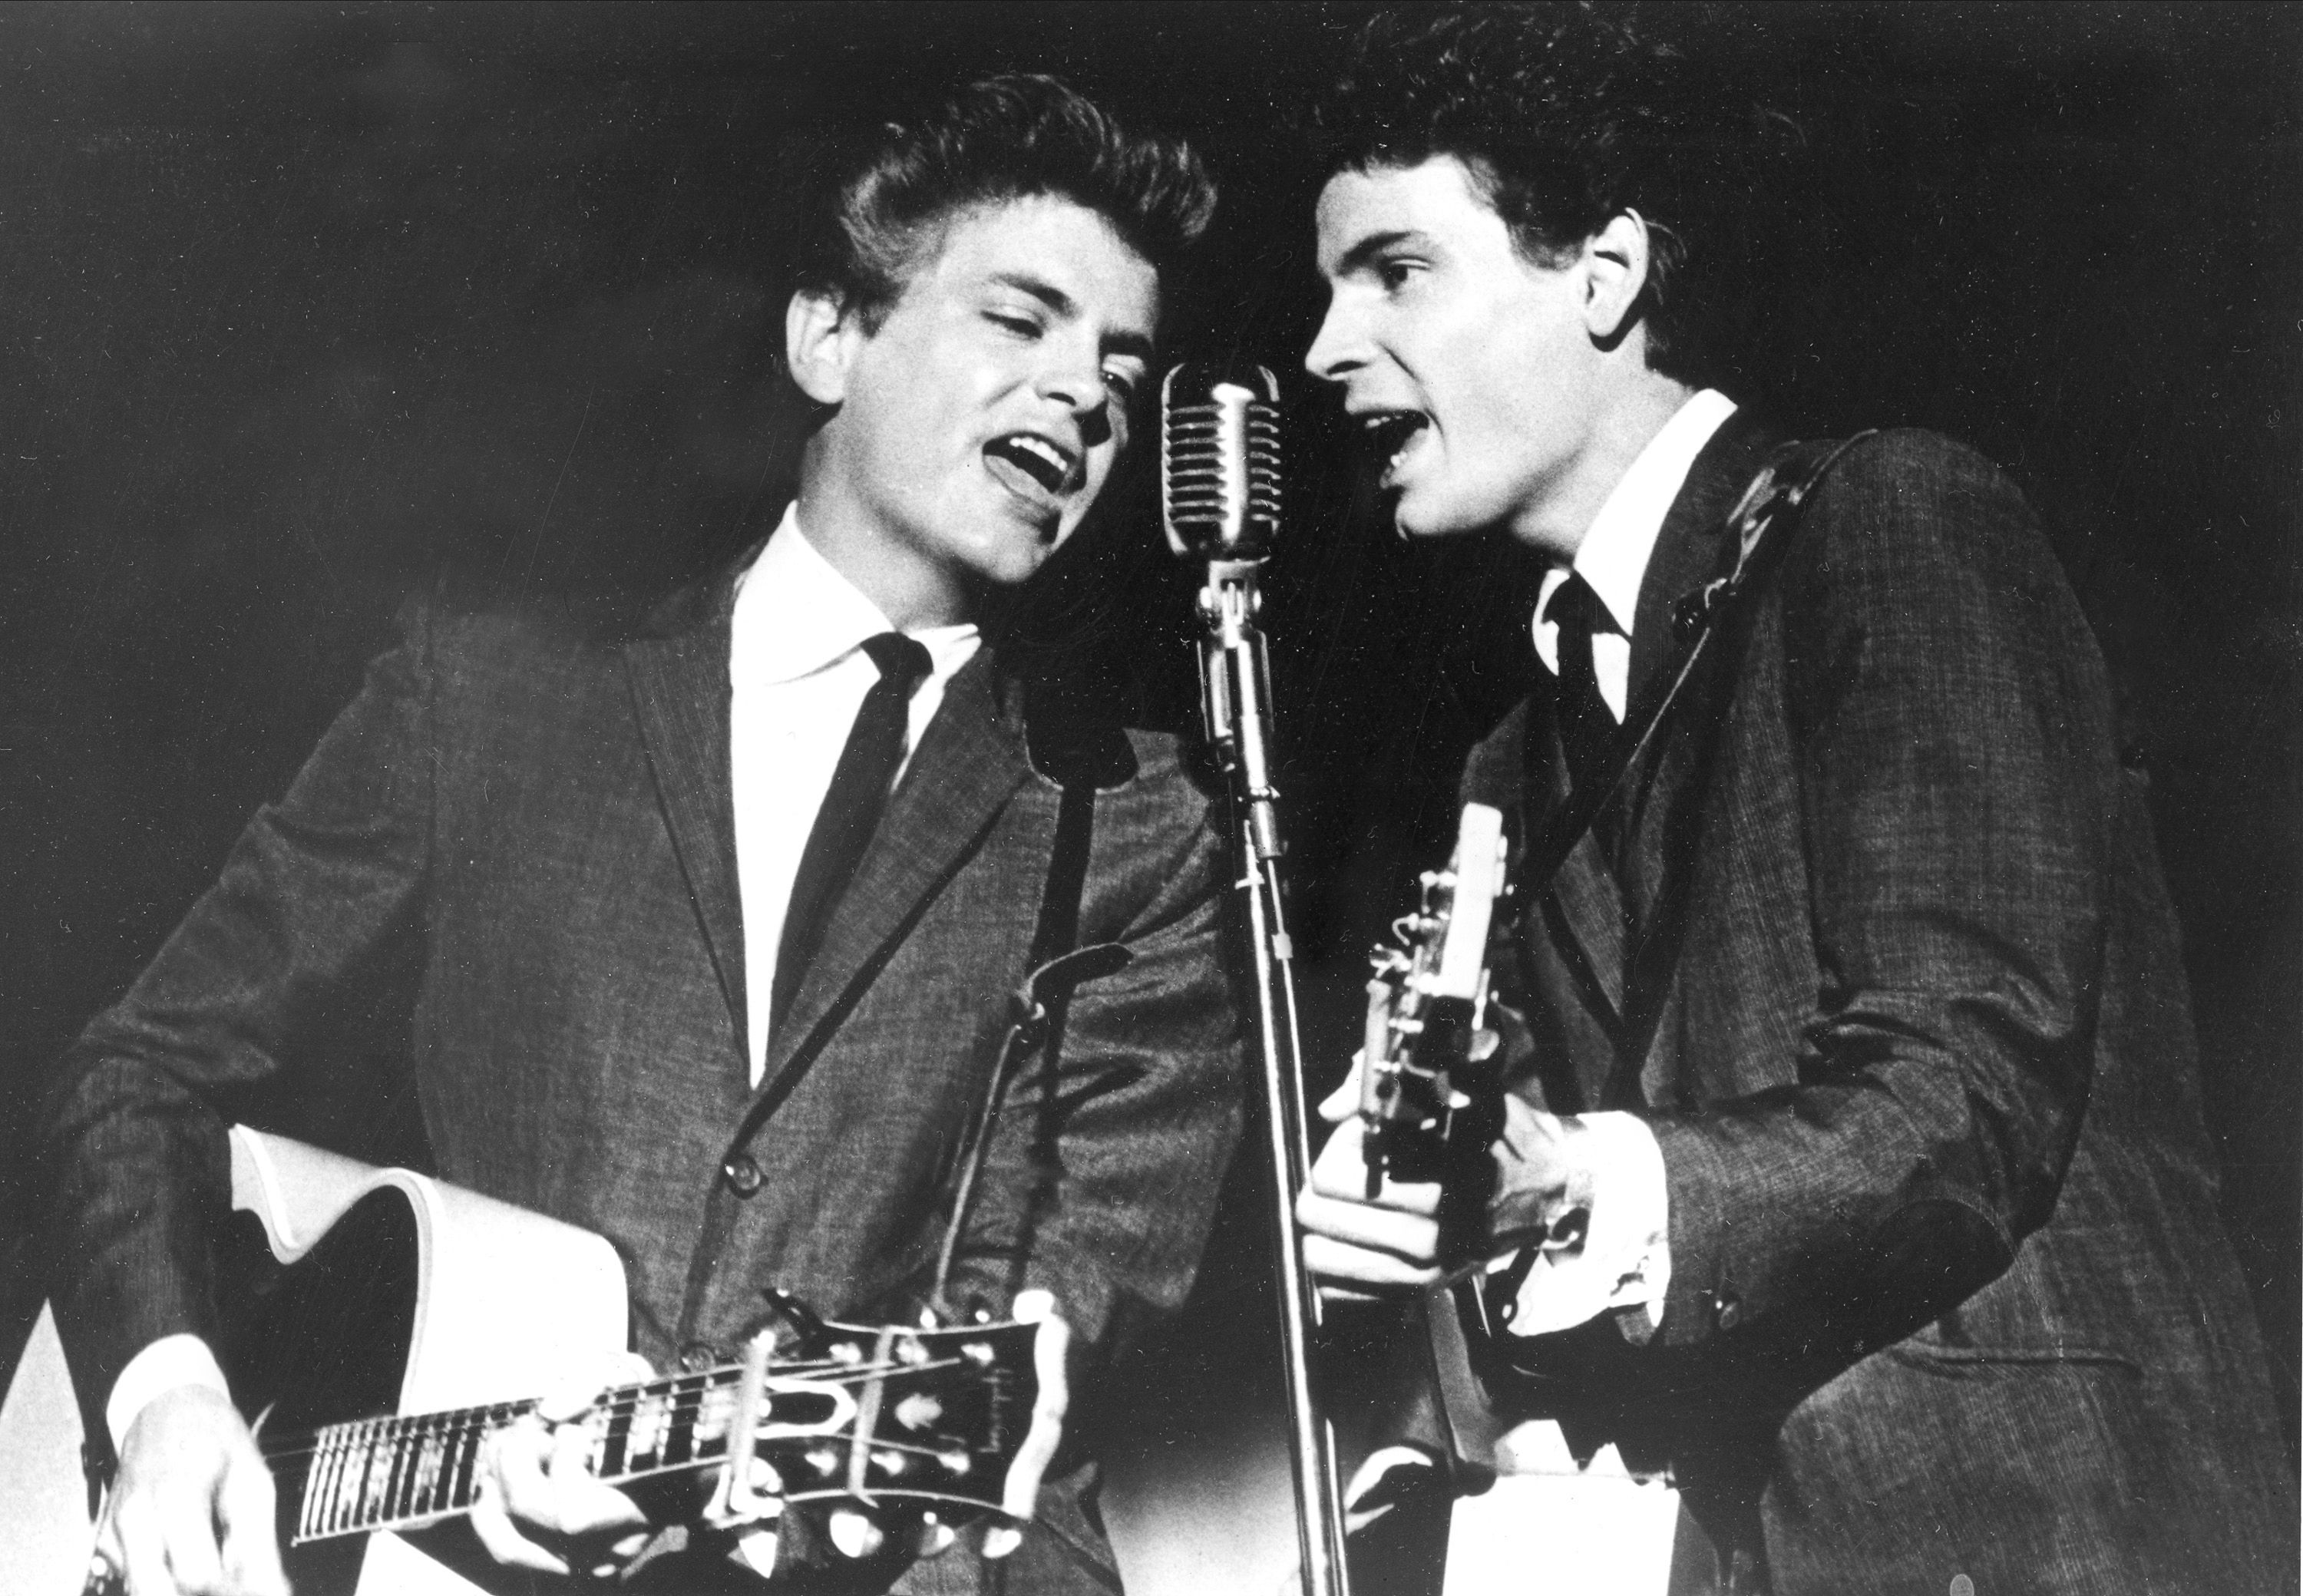 In this July 31, 1964 file photo, the Everly Brothers, Phil, left, and Don, perform on stage. (AP Photo, File)